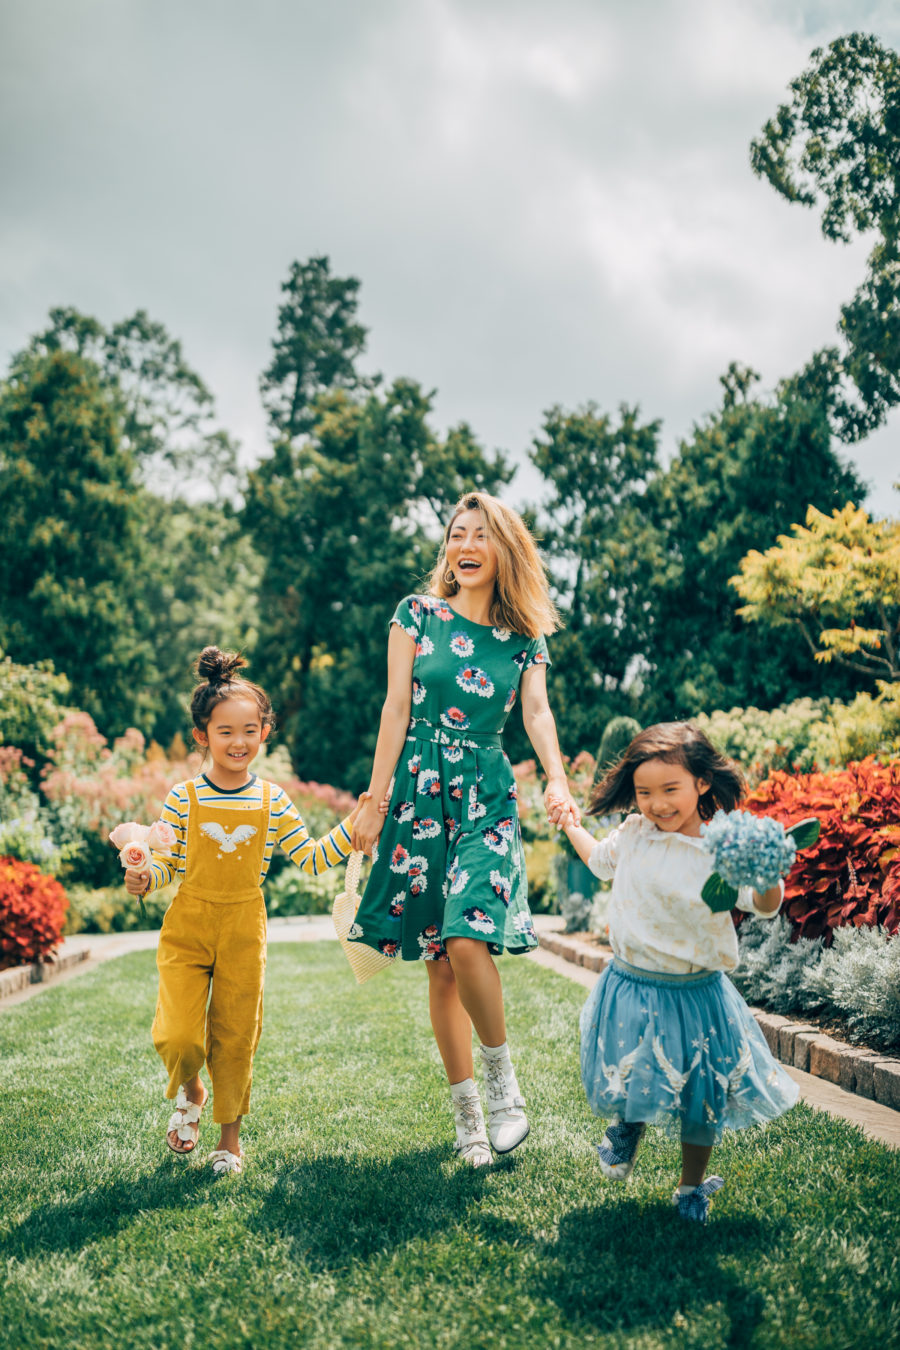 fashion blogger jessica wang with kids celebrating international women's day // Notjessfashion.com